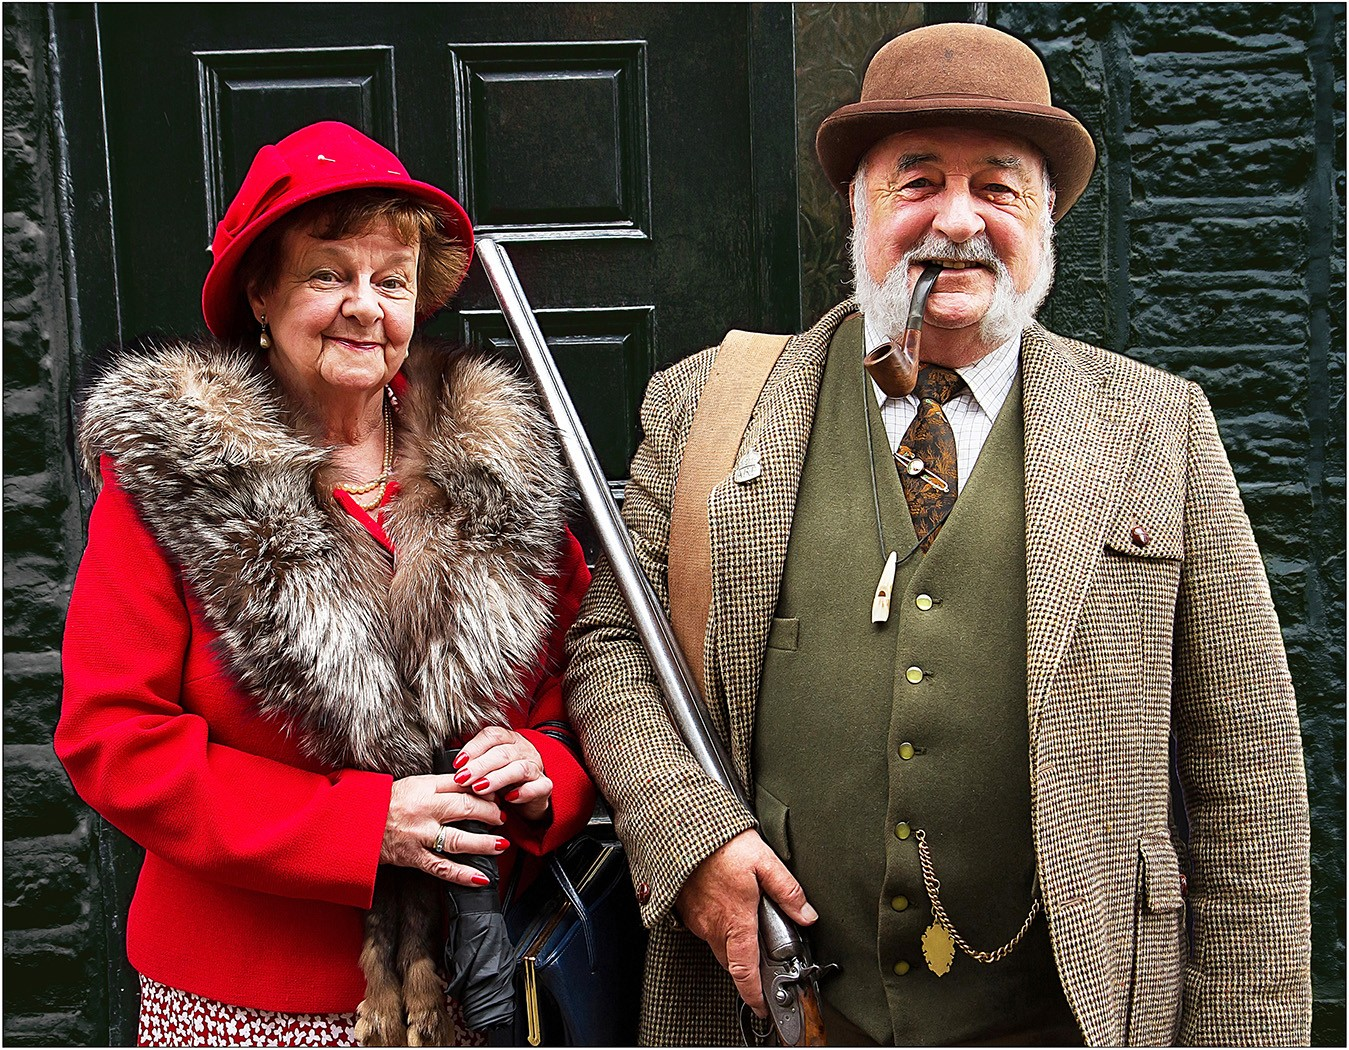 The Gamekeeper And His Wife